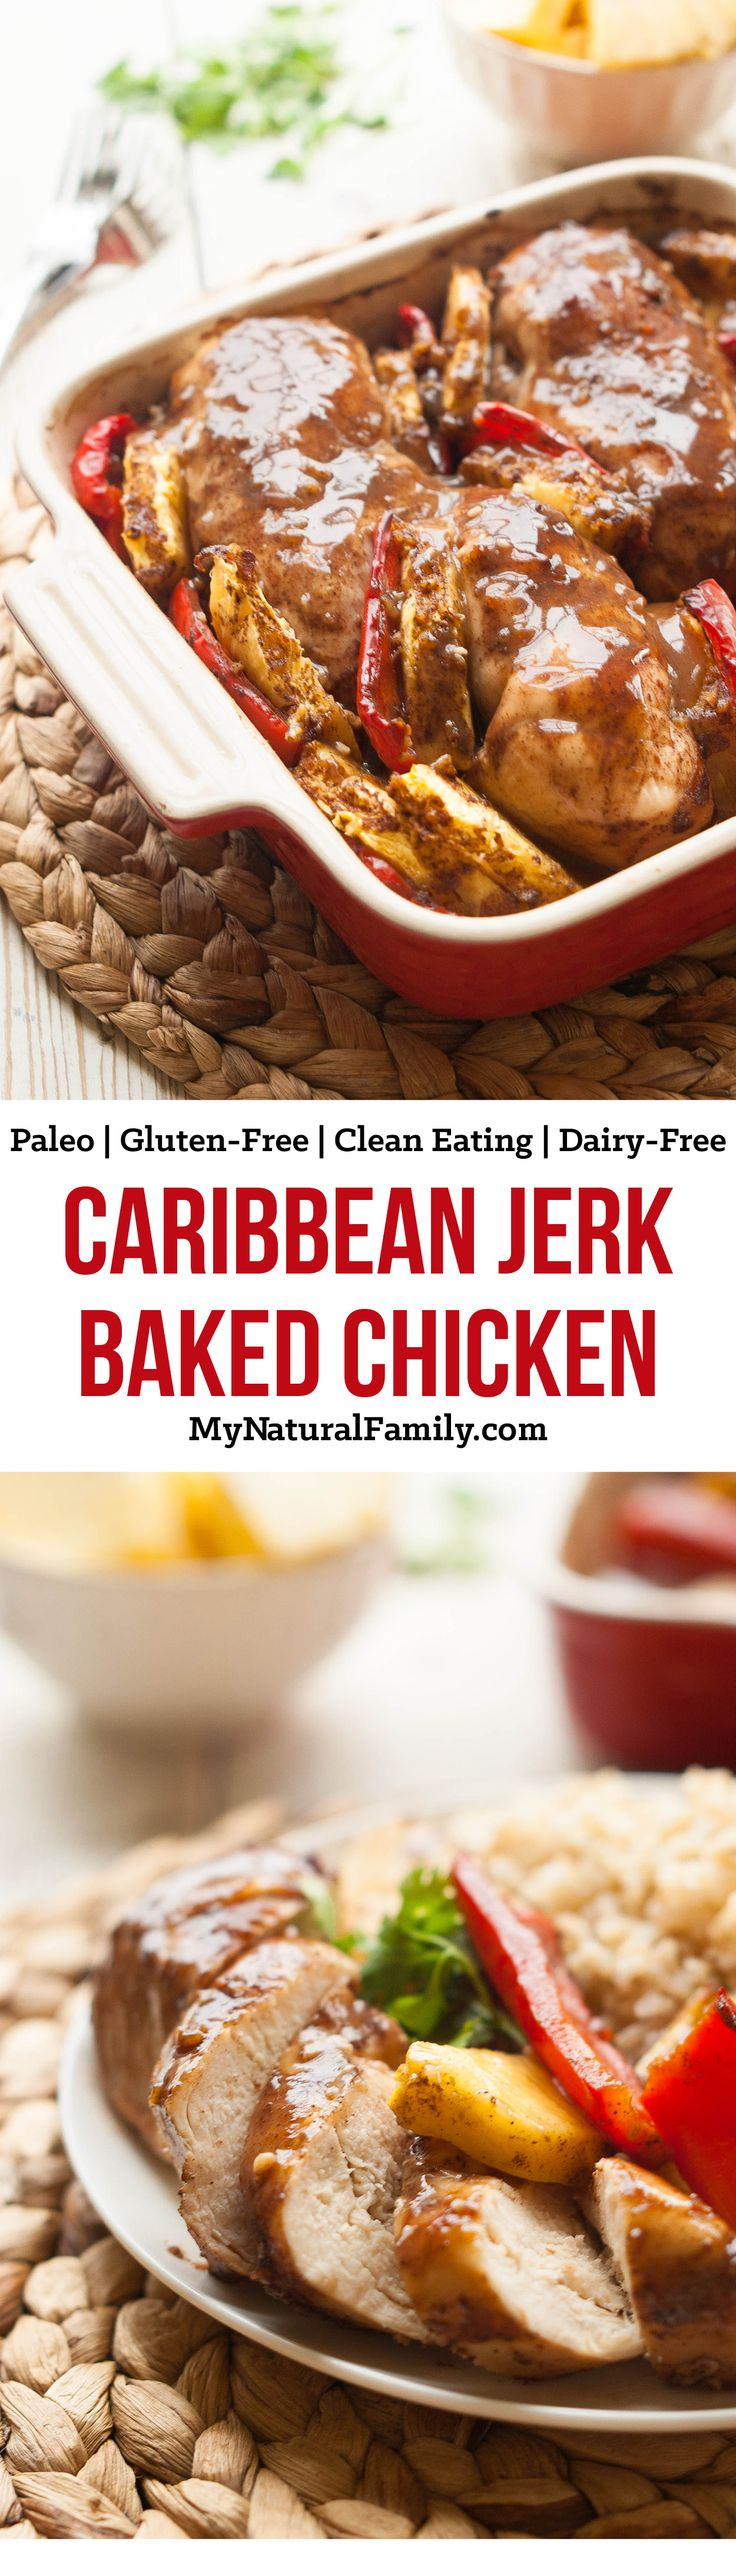 Baked chicken recipes, Caribbean and Baked chicken on Pinterest